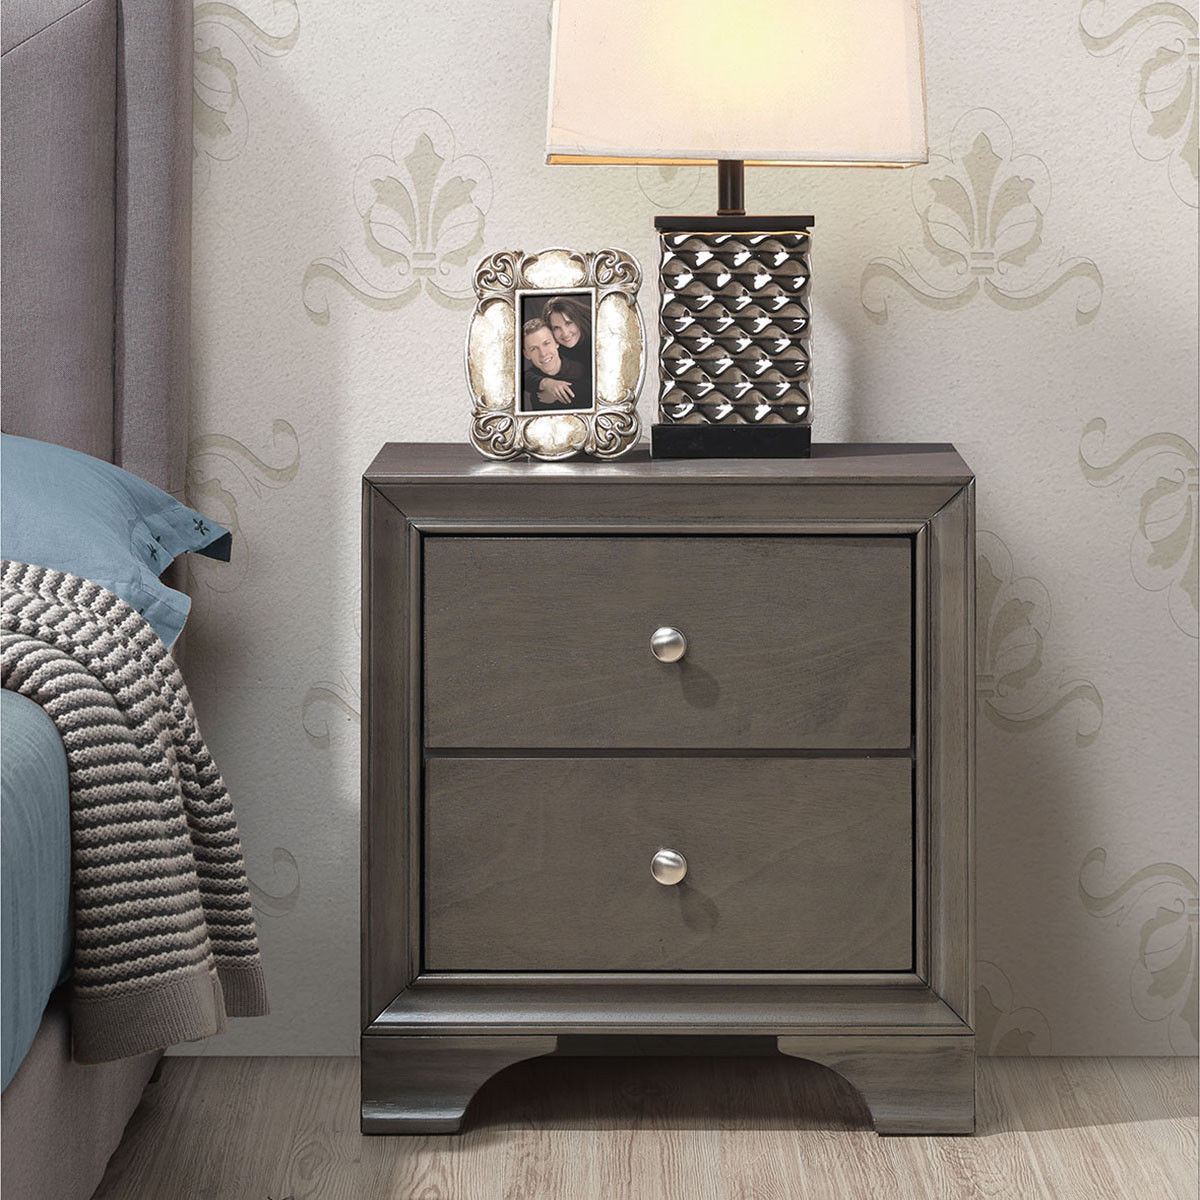 Gymax 2PCS 2 Drawers Nightstand Sofa Side End Table Storage Furniture W/USB Port Gray - image 1 of 10